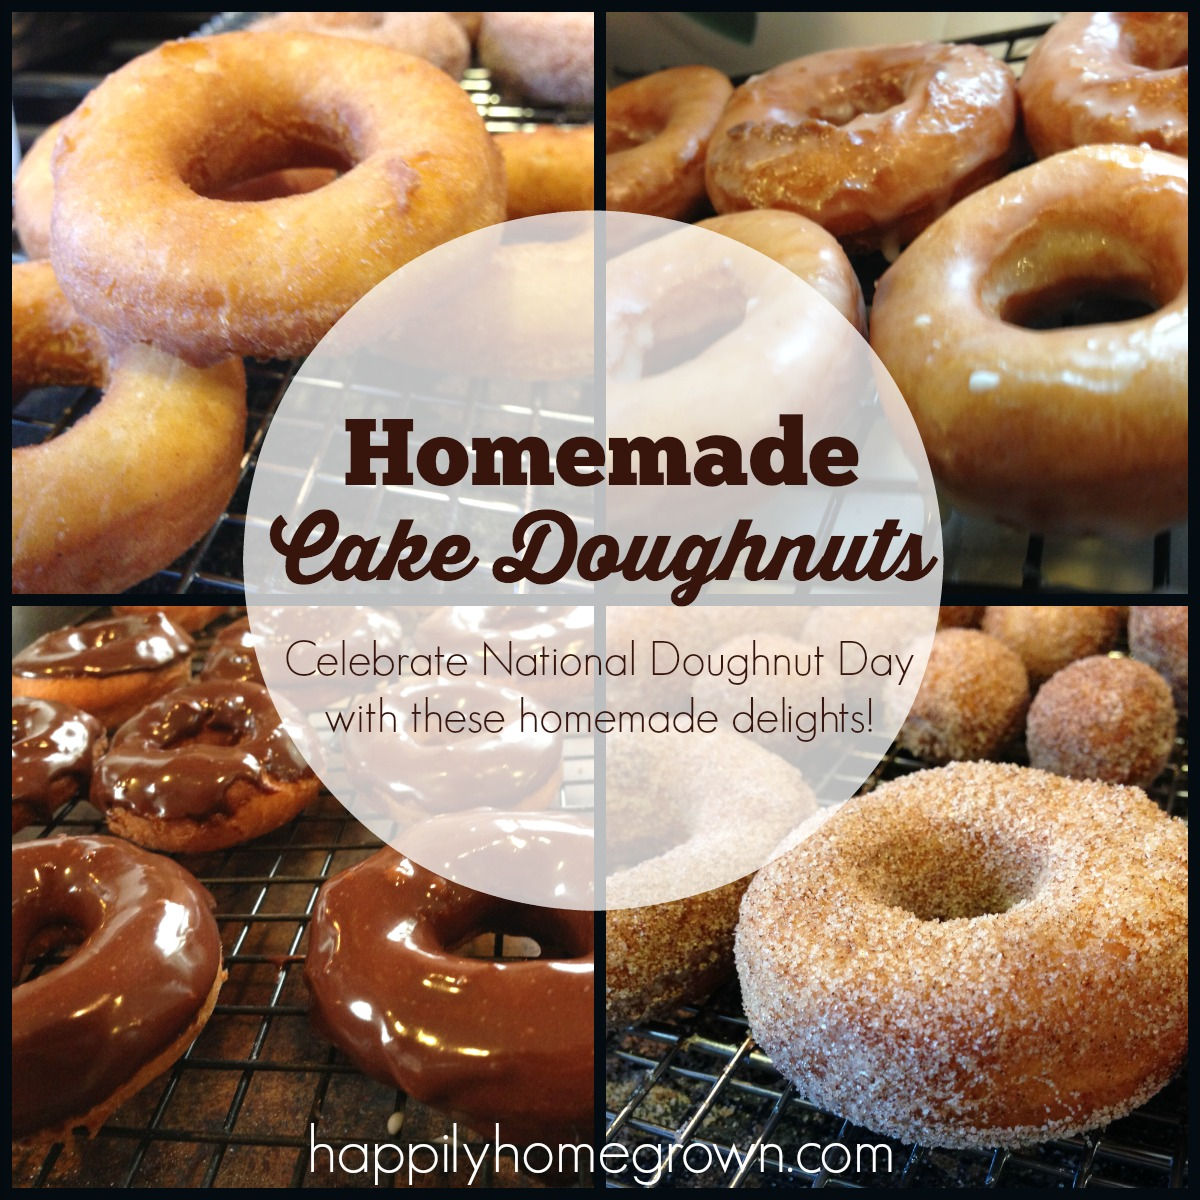 Celebrate National Doughnut Day, or any day, with these amazingly simple, yet absolutely delicious doughnuts fresh from your own kitchen.